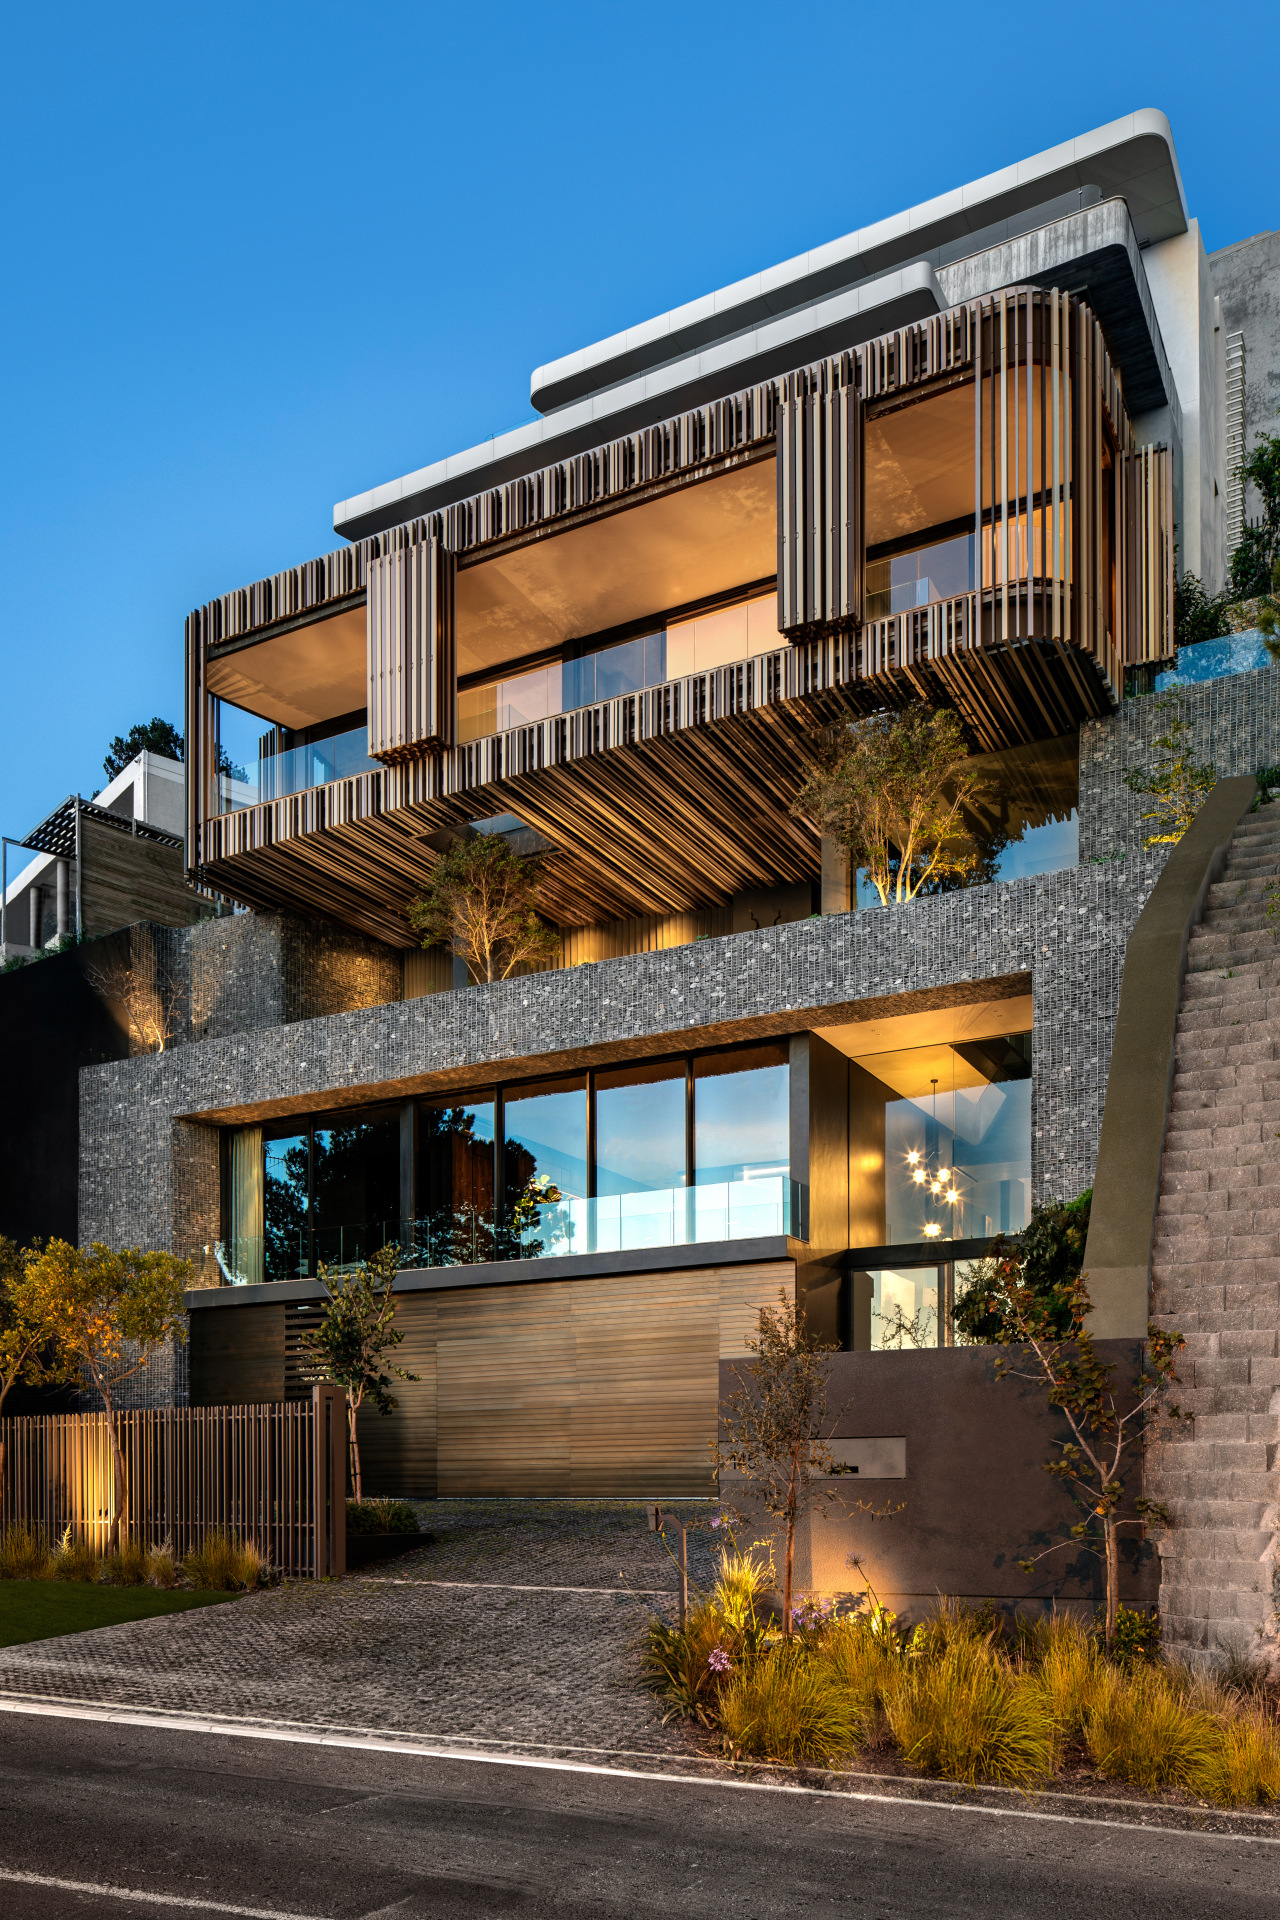 The home was conceived as an arrangement of apartment, architecture, building, estate, facade, home, house, interior design, mixed-use, property, real estate, residential area, sky, tree, black